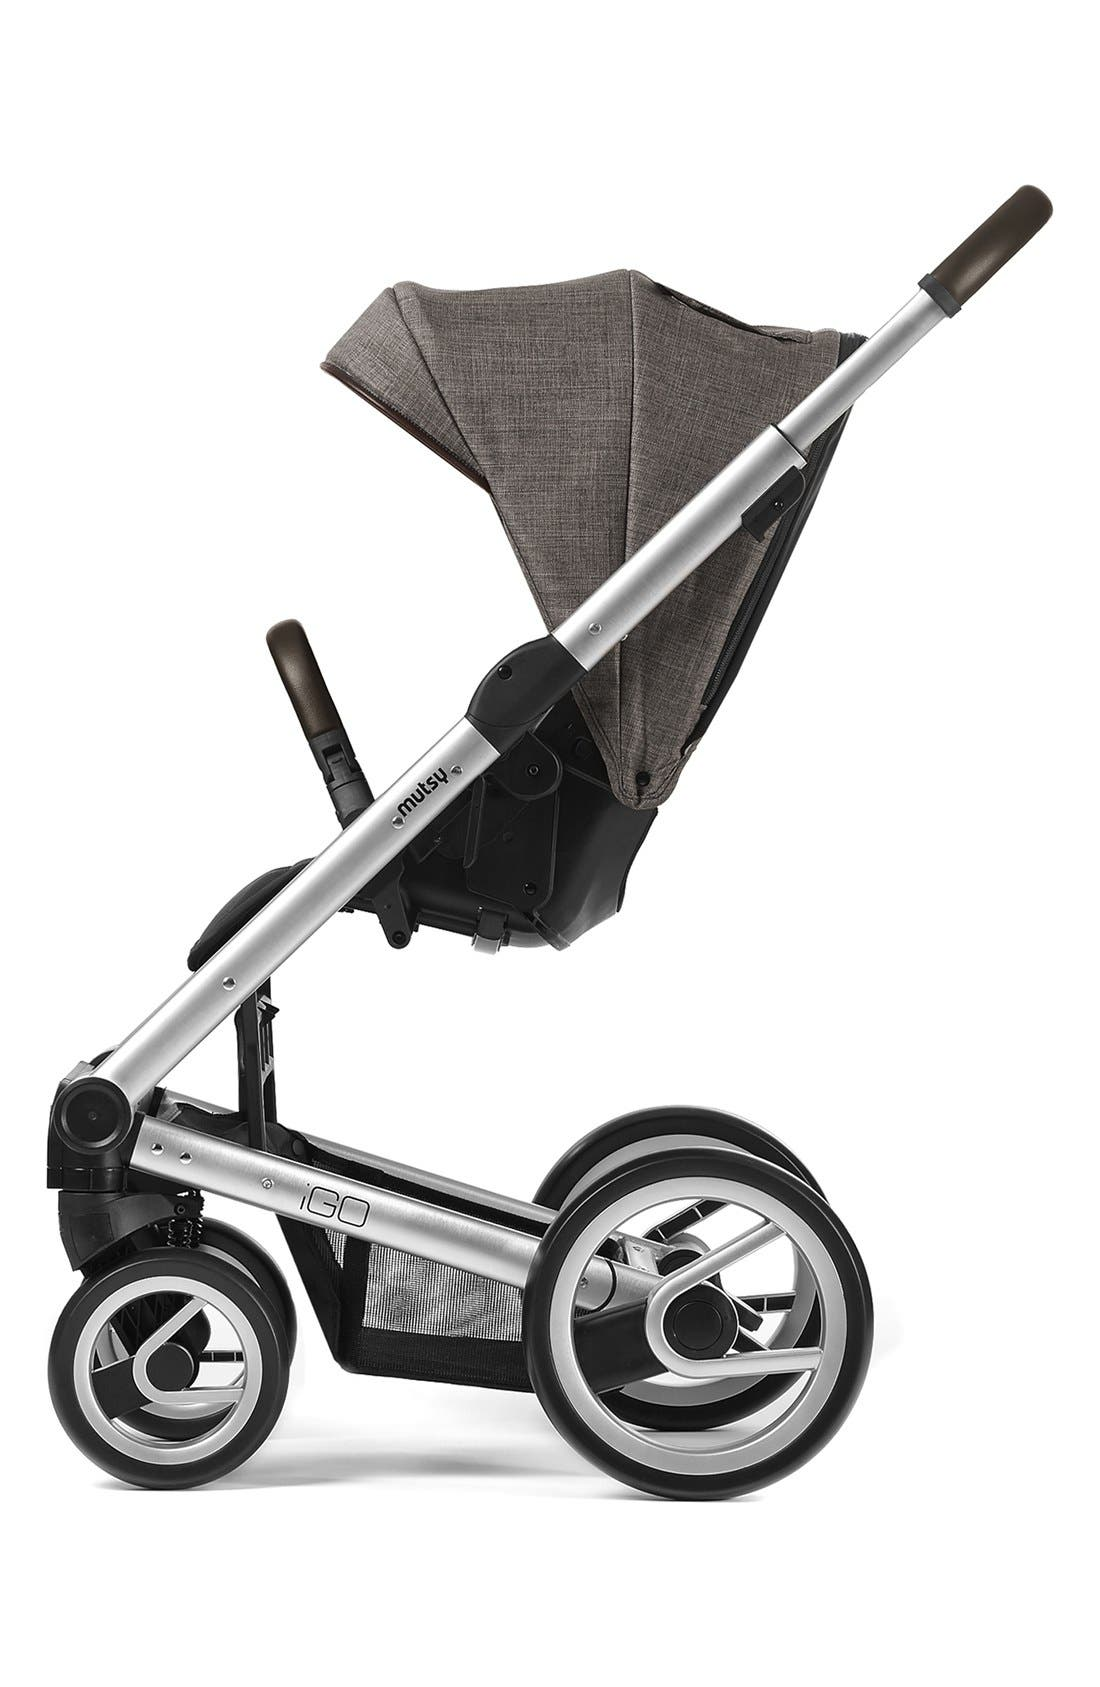 Igo - Farmer Earth Stroller,                             Alternate thumbnail 2, color,                             211